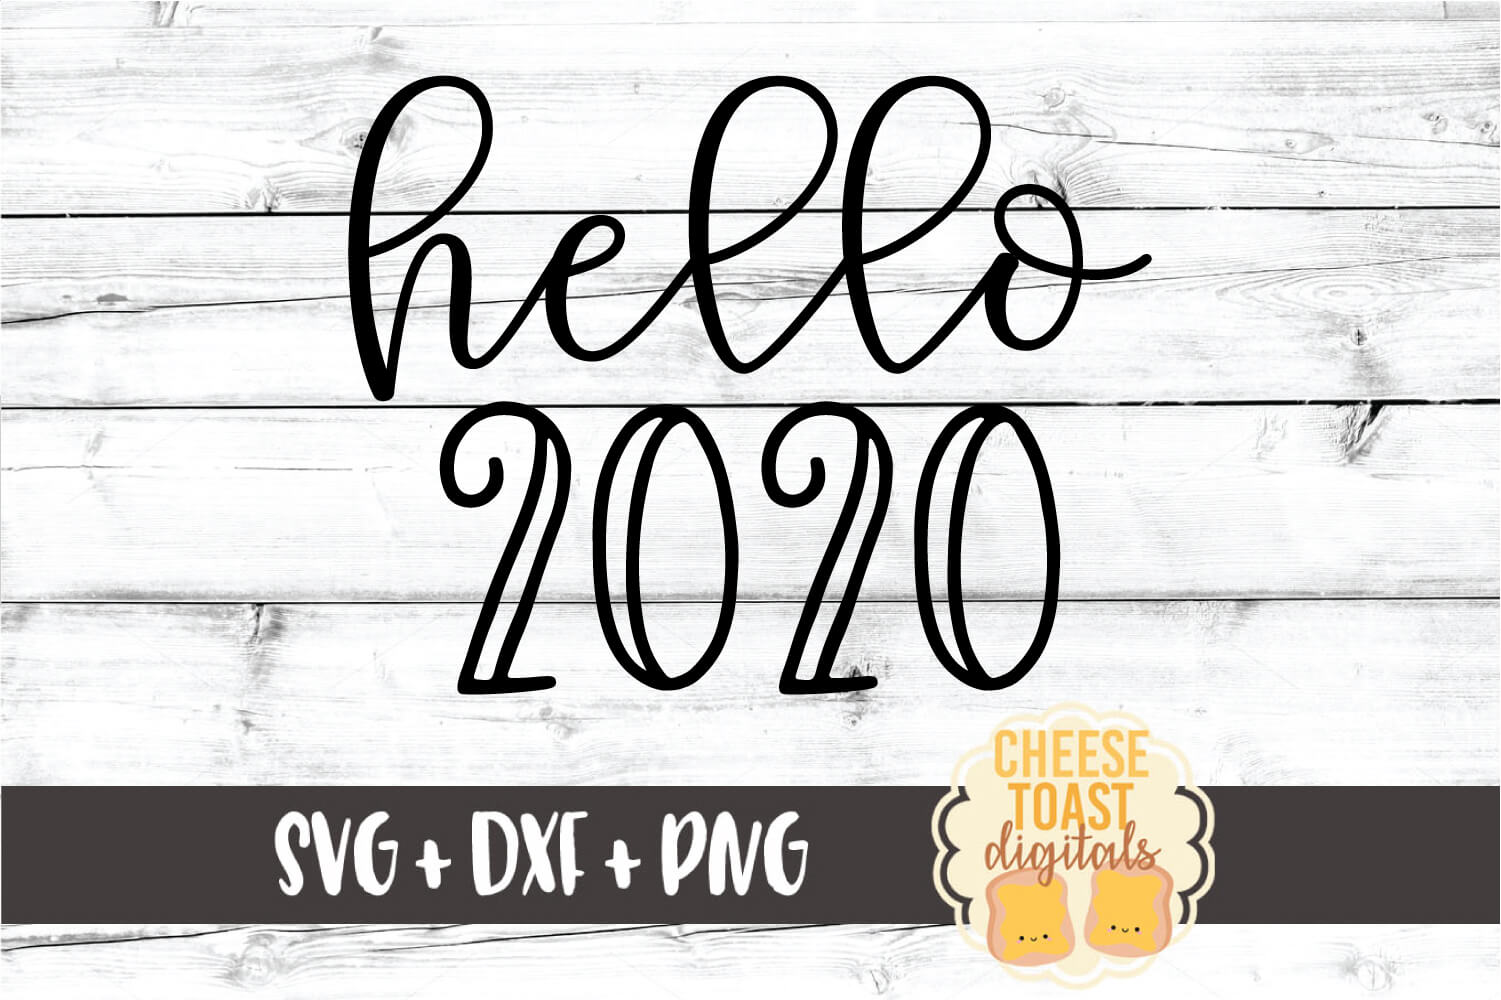 Hello 2020 - New Year SVG PNG DXF Cut Files example image 2